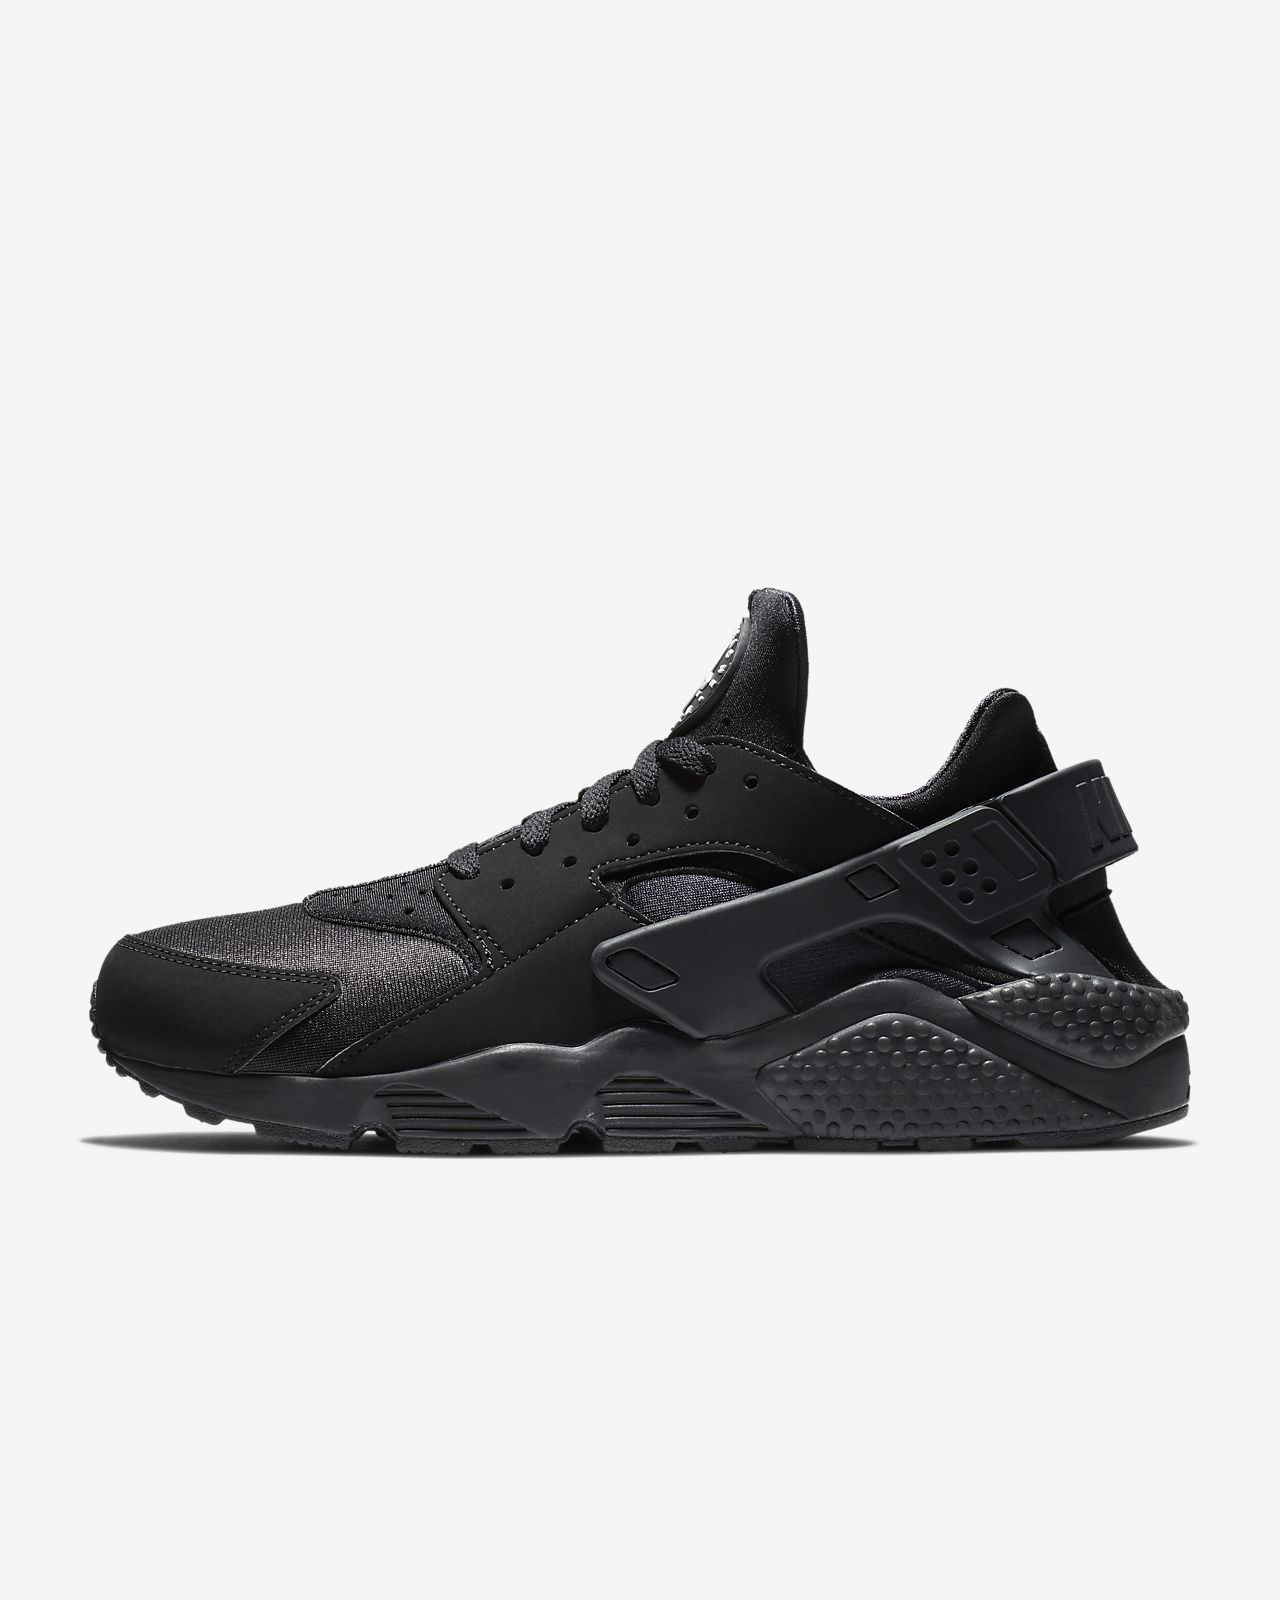 Buy Nike Huarache Free Men's Run Trainers LE Black White